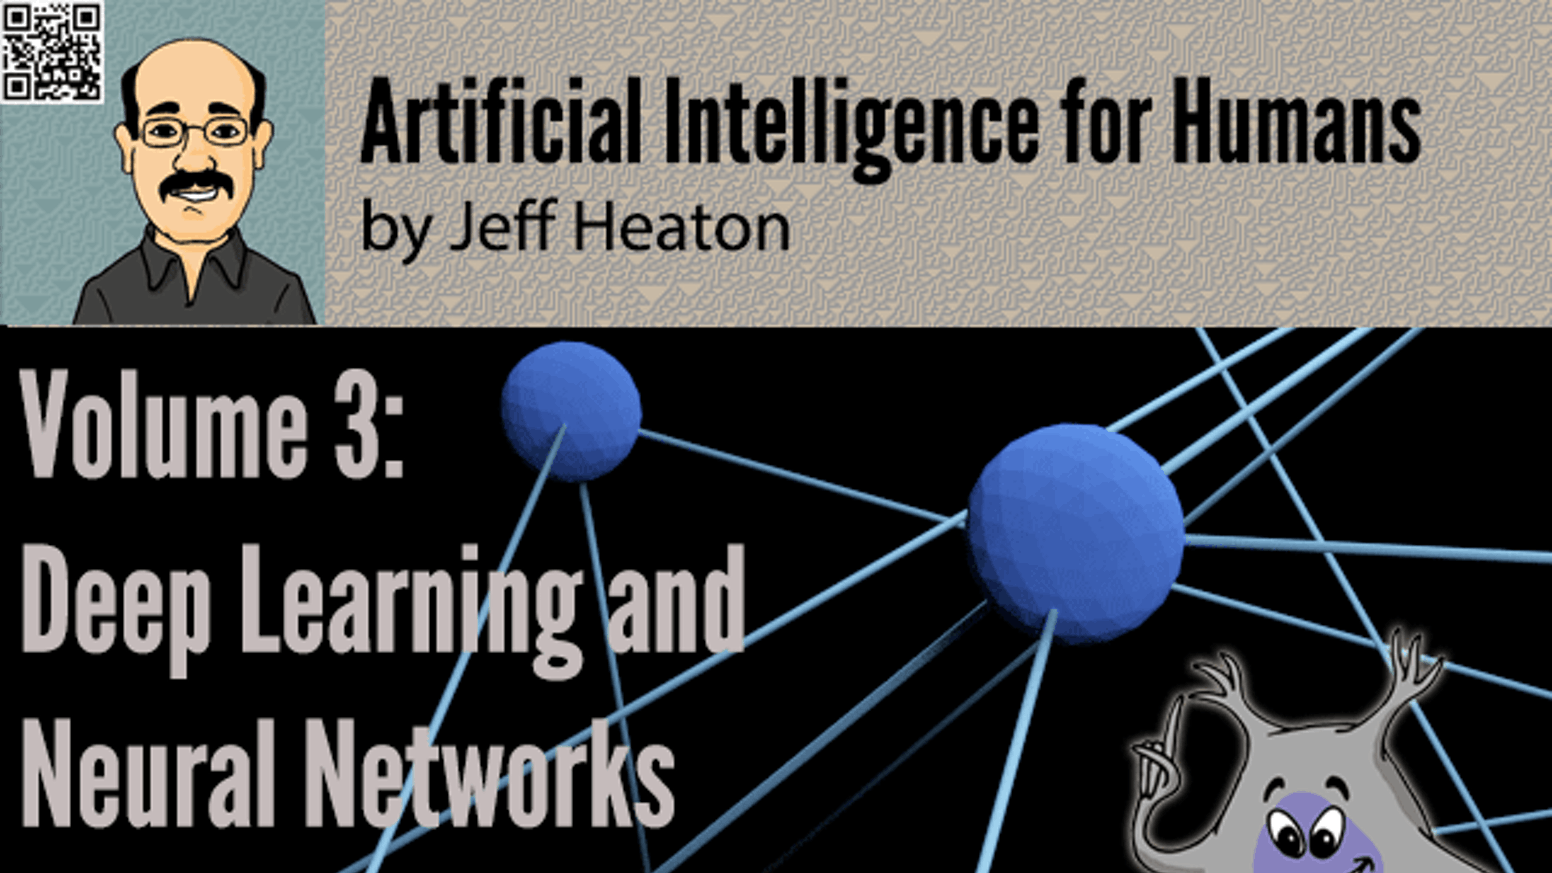 This book will present deep and classical neural networks. Learn this exciting new technology in a mathematically gentle manner.